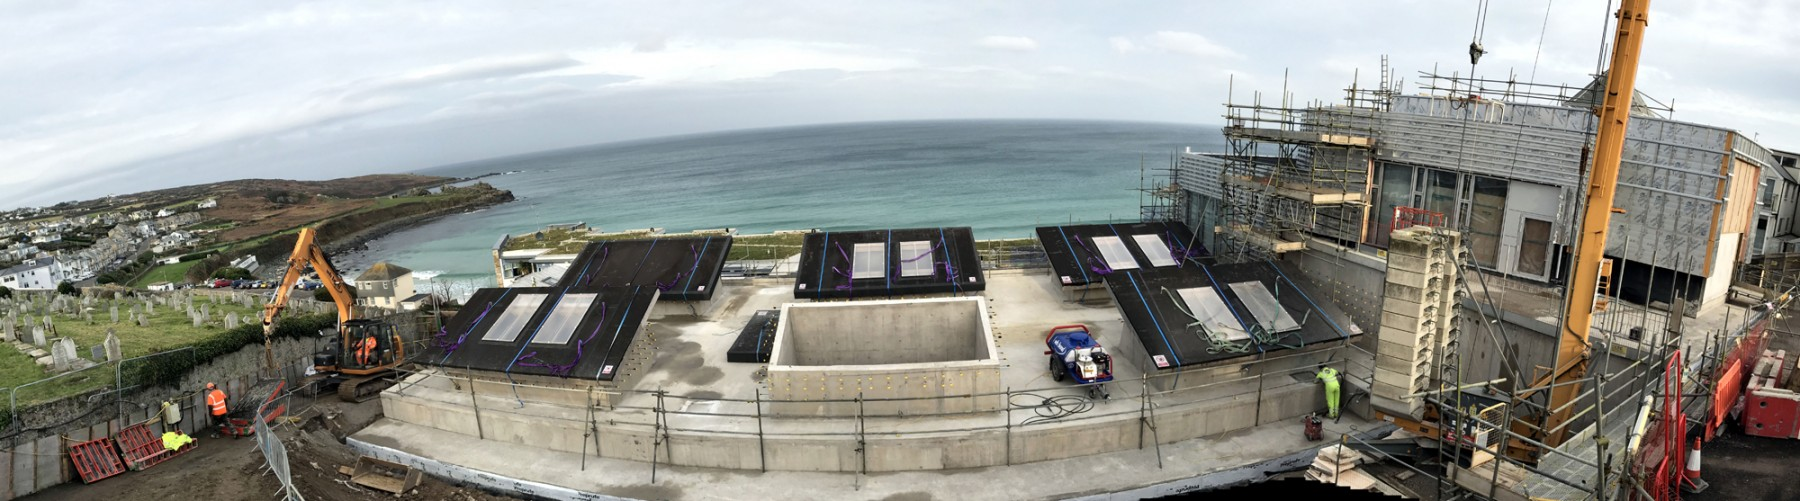 Tate-st-ives-cornwall-construction-site-jamie-fobert-architects-porthmeor-beach